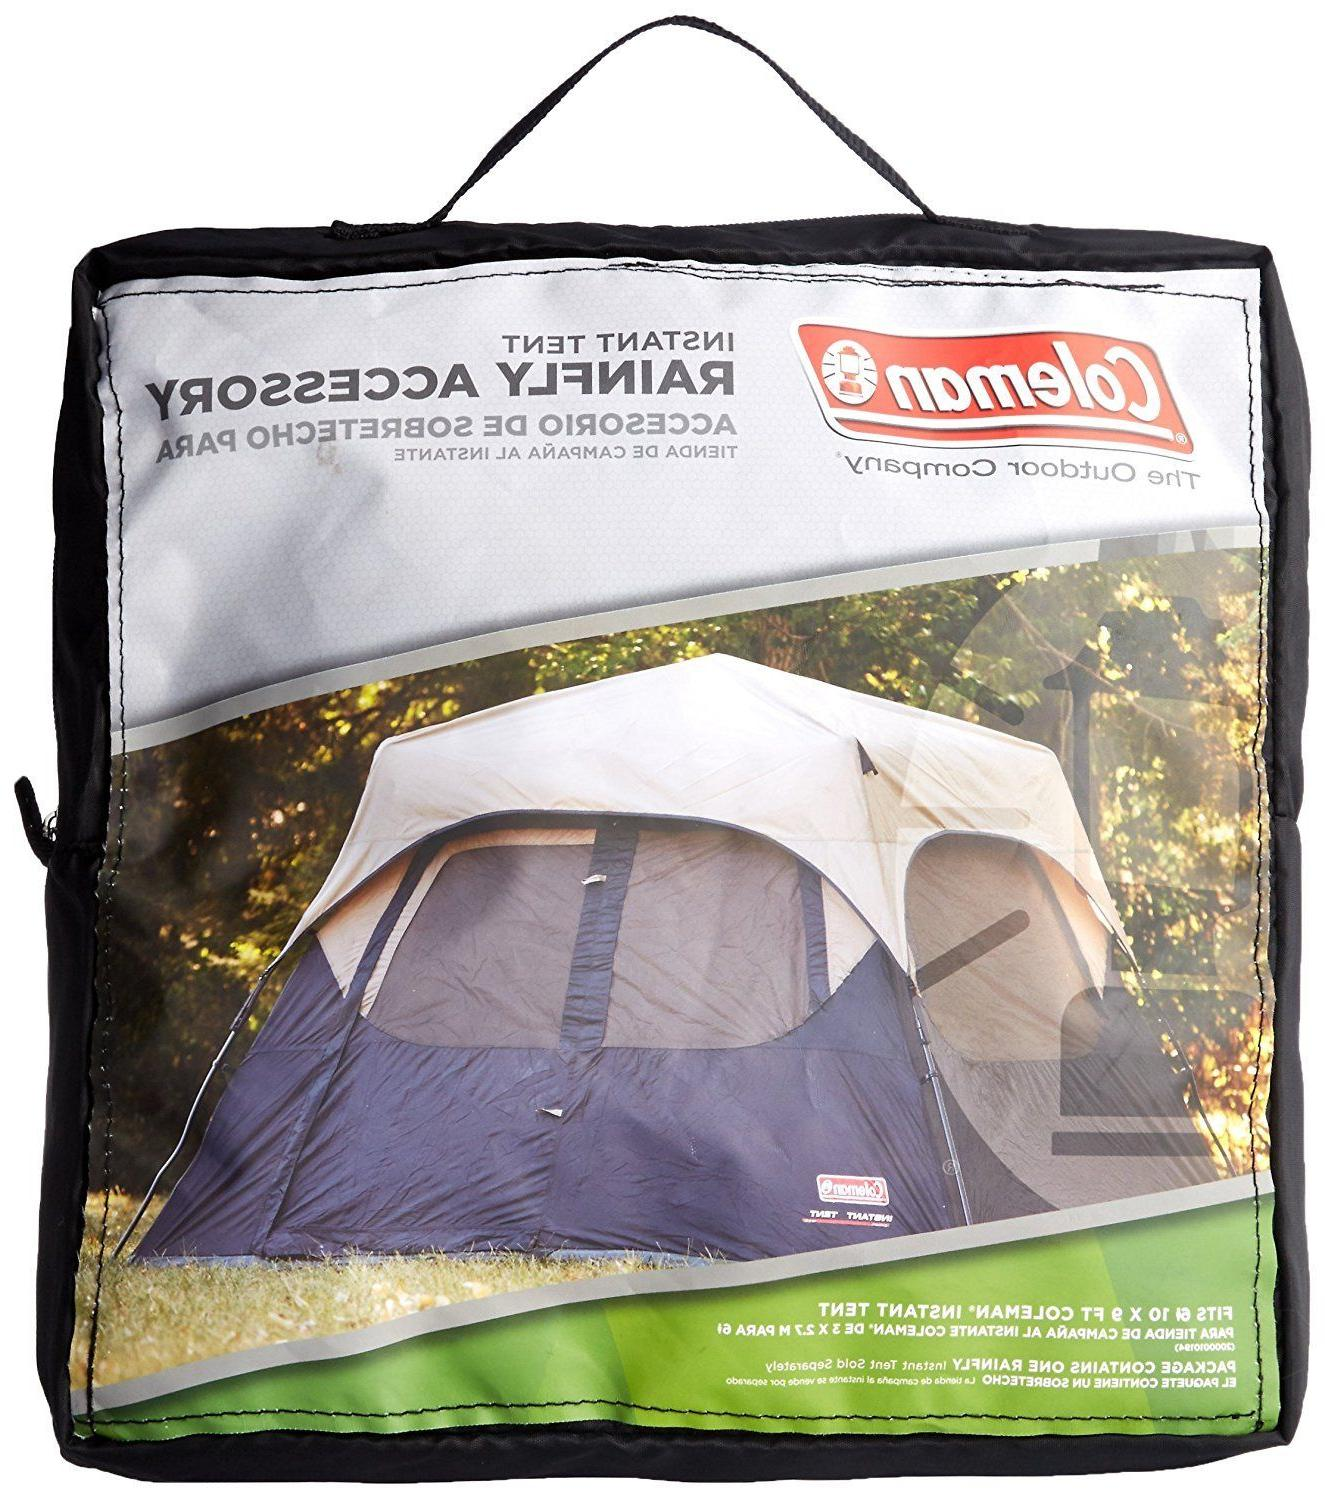 Rainfly Coleman 6-Person Tent Sleep Camping Outdoor